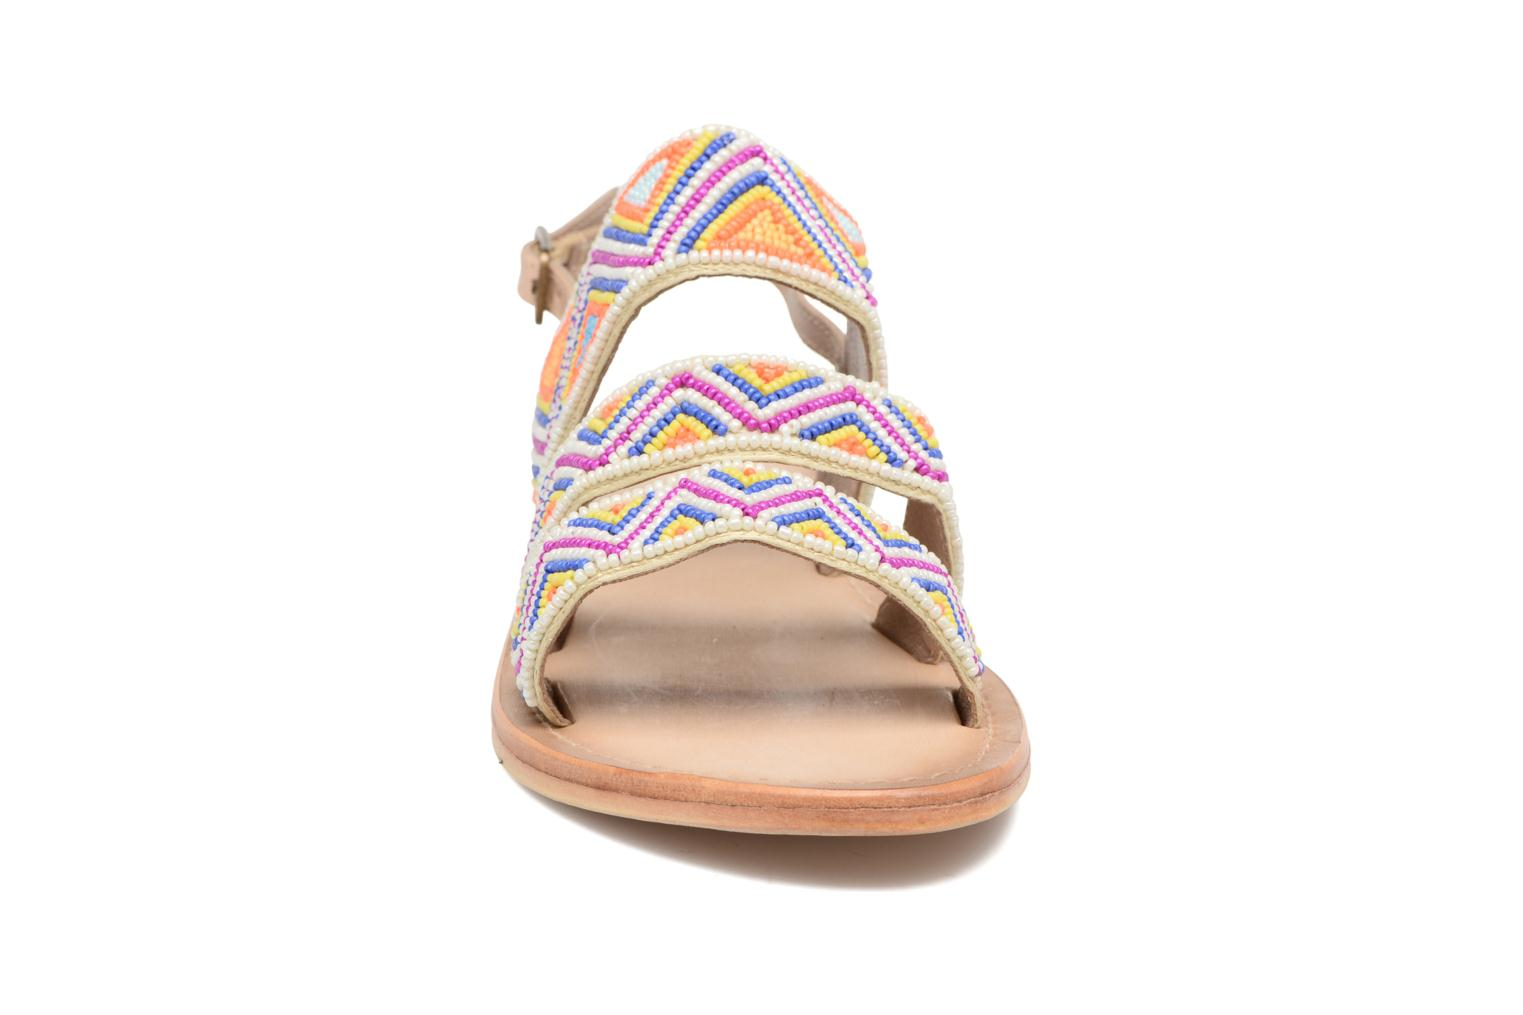 Sandals Les Tropéziennes par M Belarbi Nomade Multicolor model view